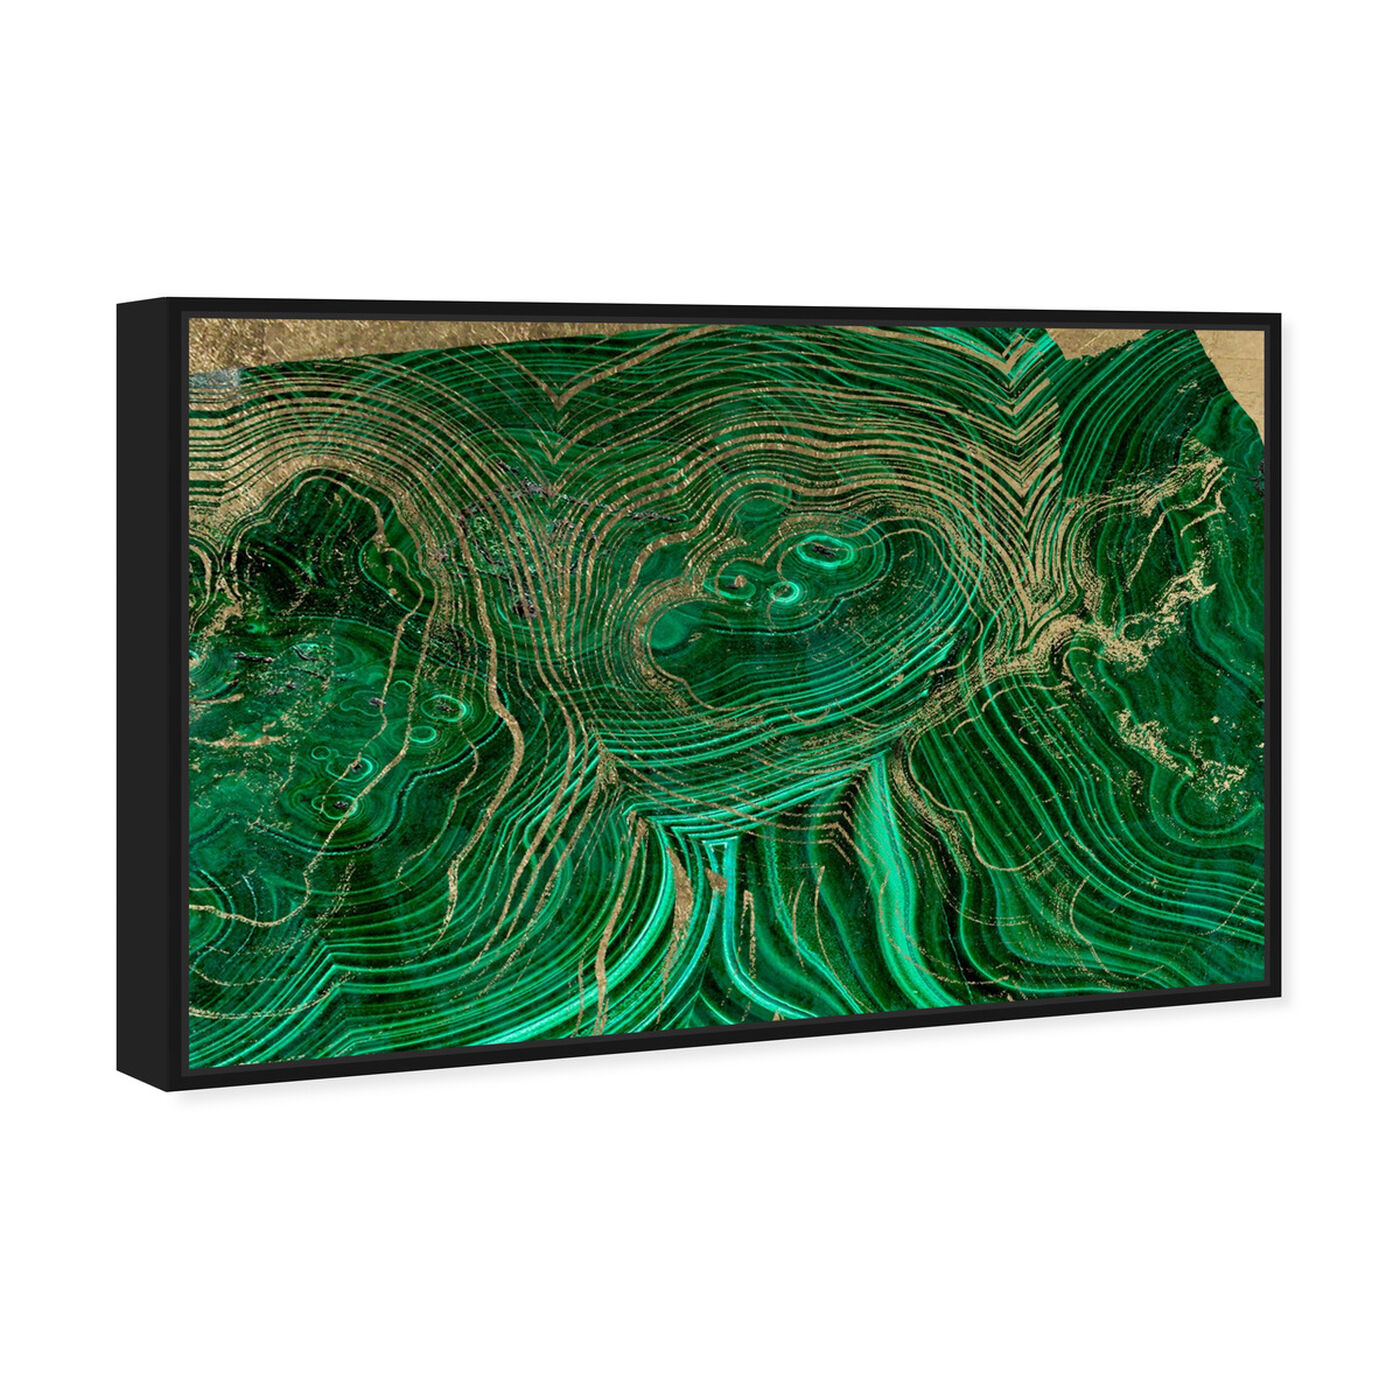 Angled view of Emerald Agate featuring abstract and crystals art.